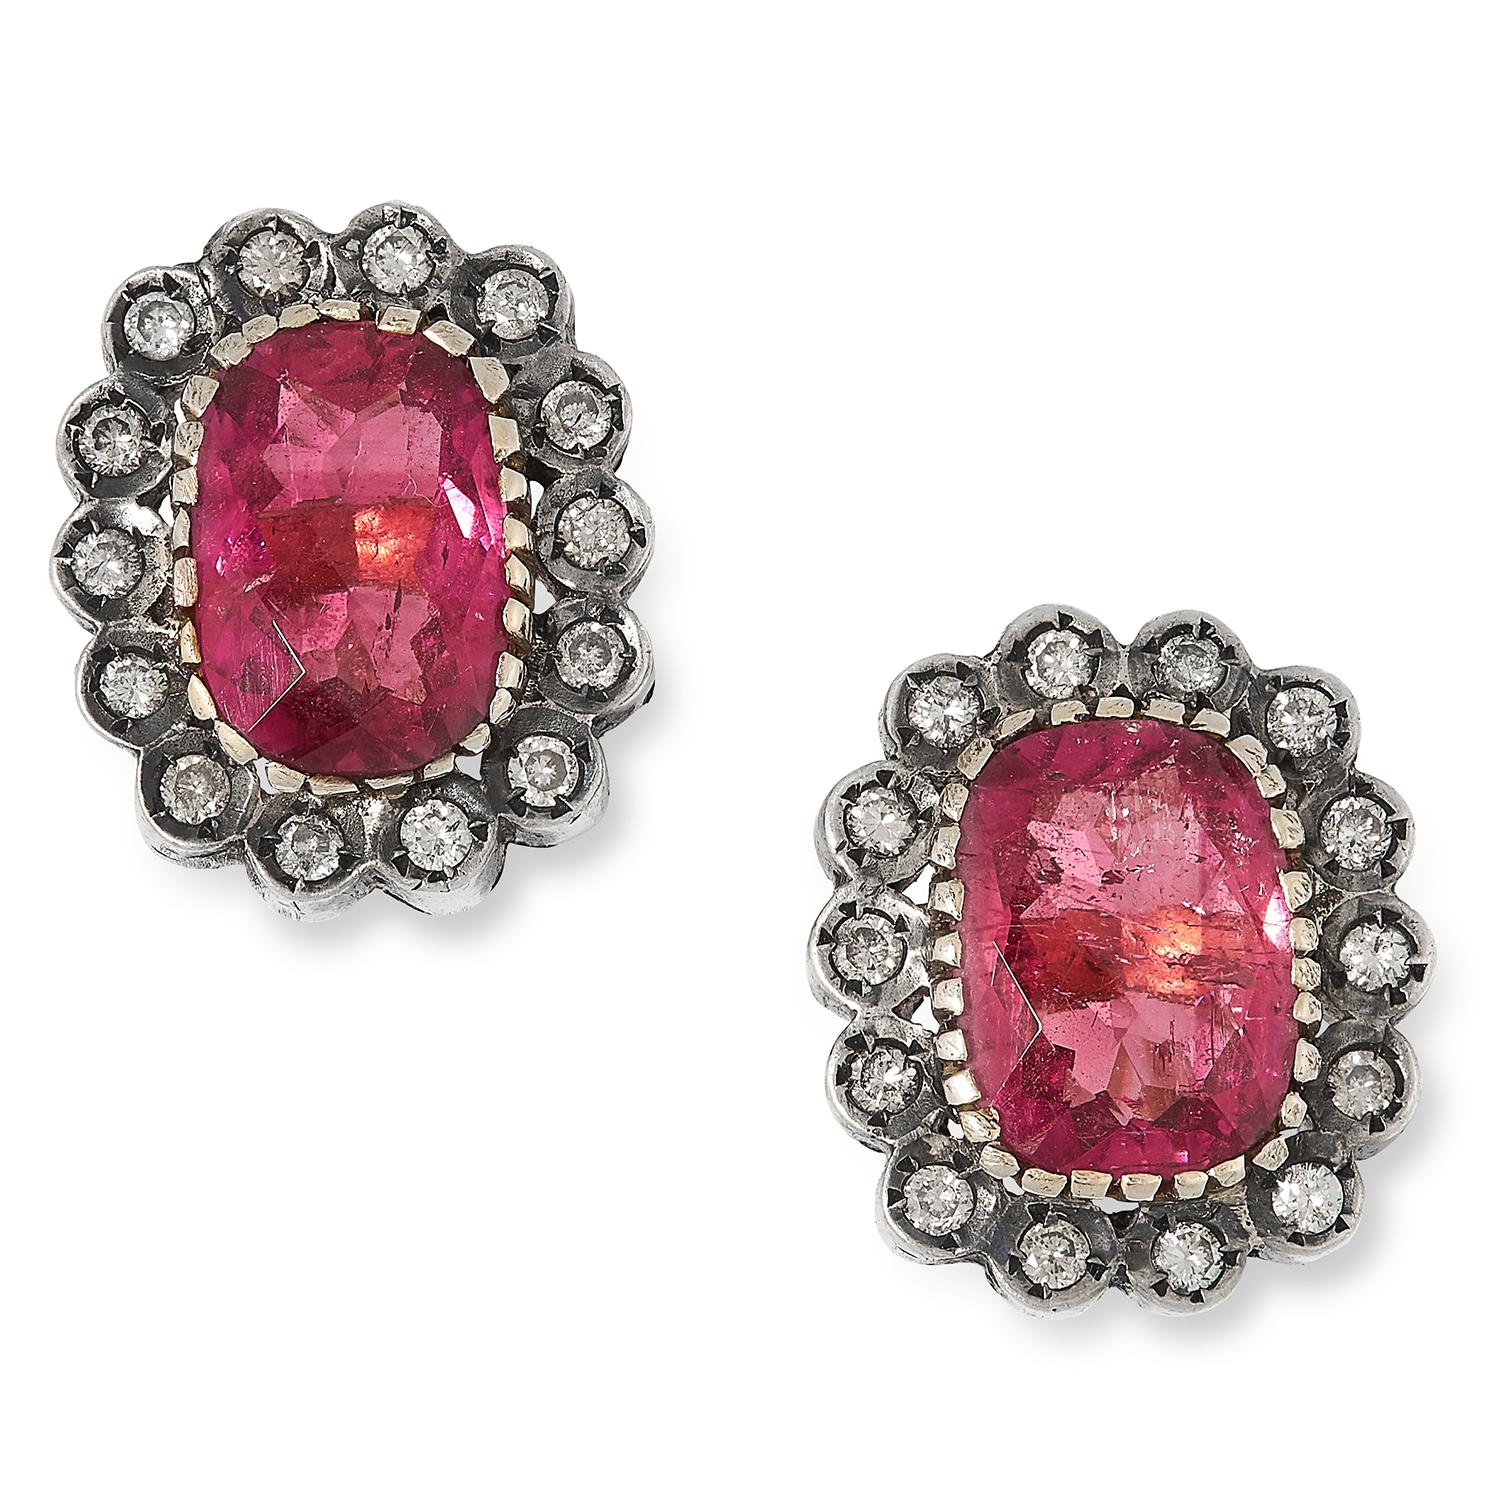 Los 16 - TOURMALINE AND DIAMOND CLUSTER EARRINGS each set with a cushion cut tourmaline totalling